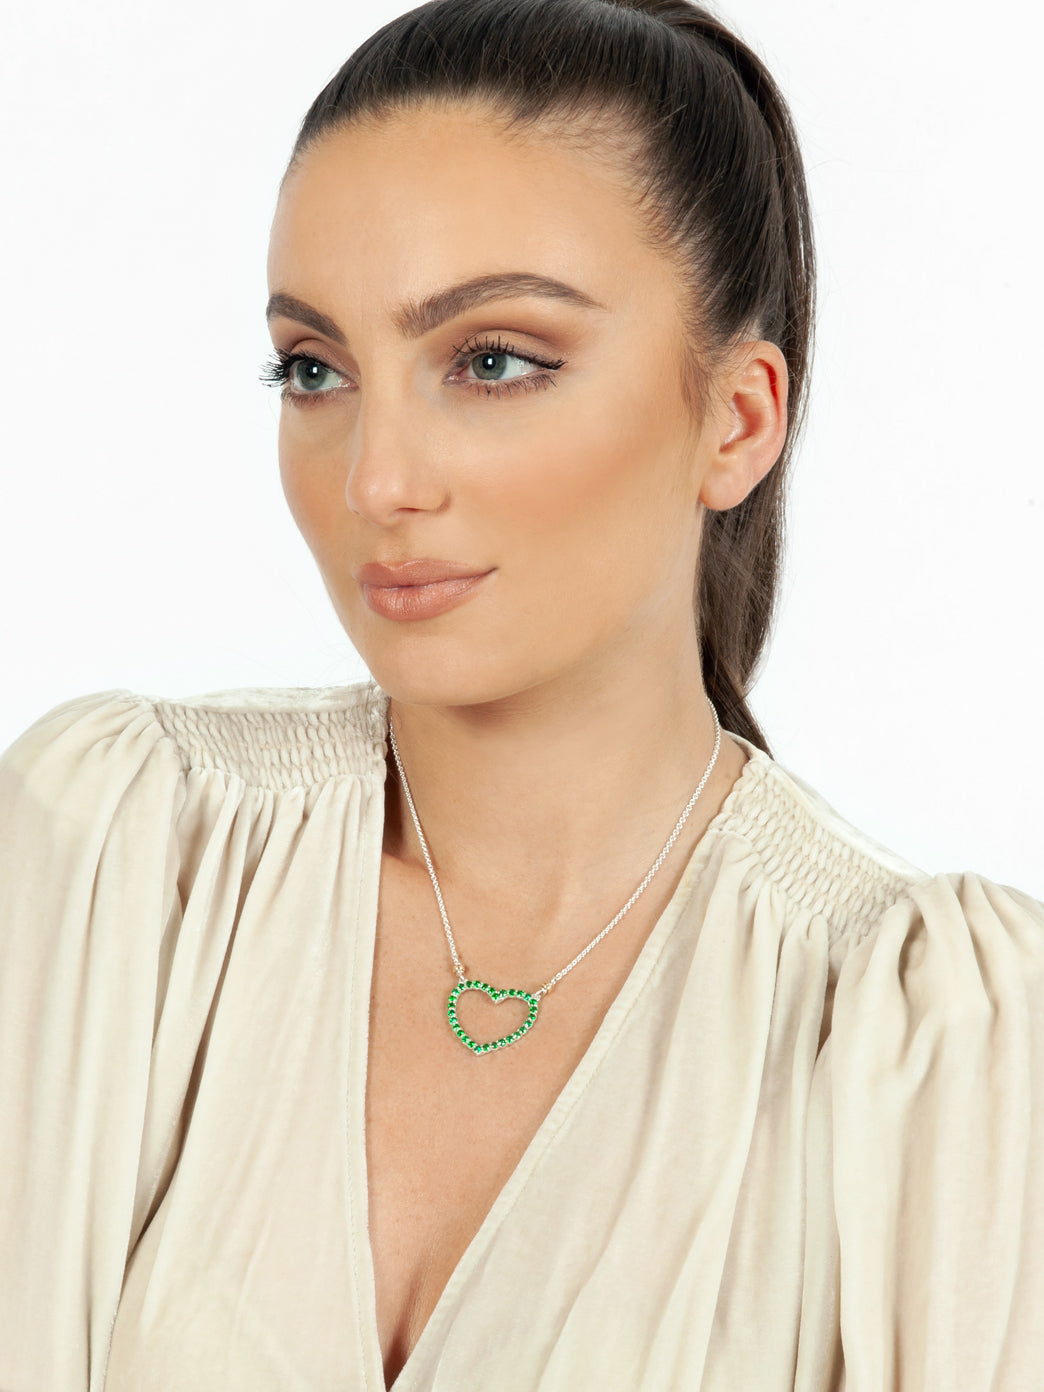 Fiorina Jewellery Heart Love Necklace Emerald Model